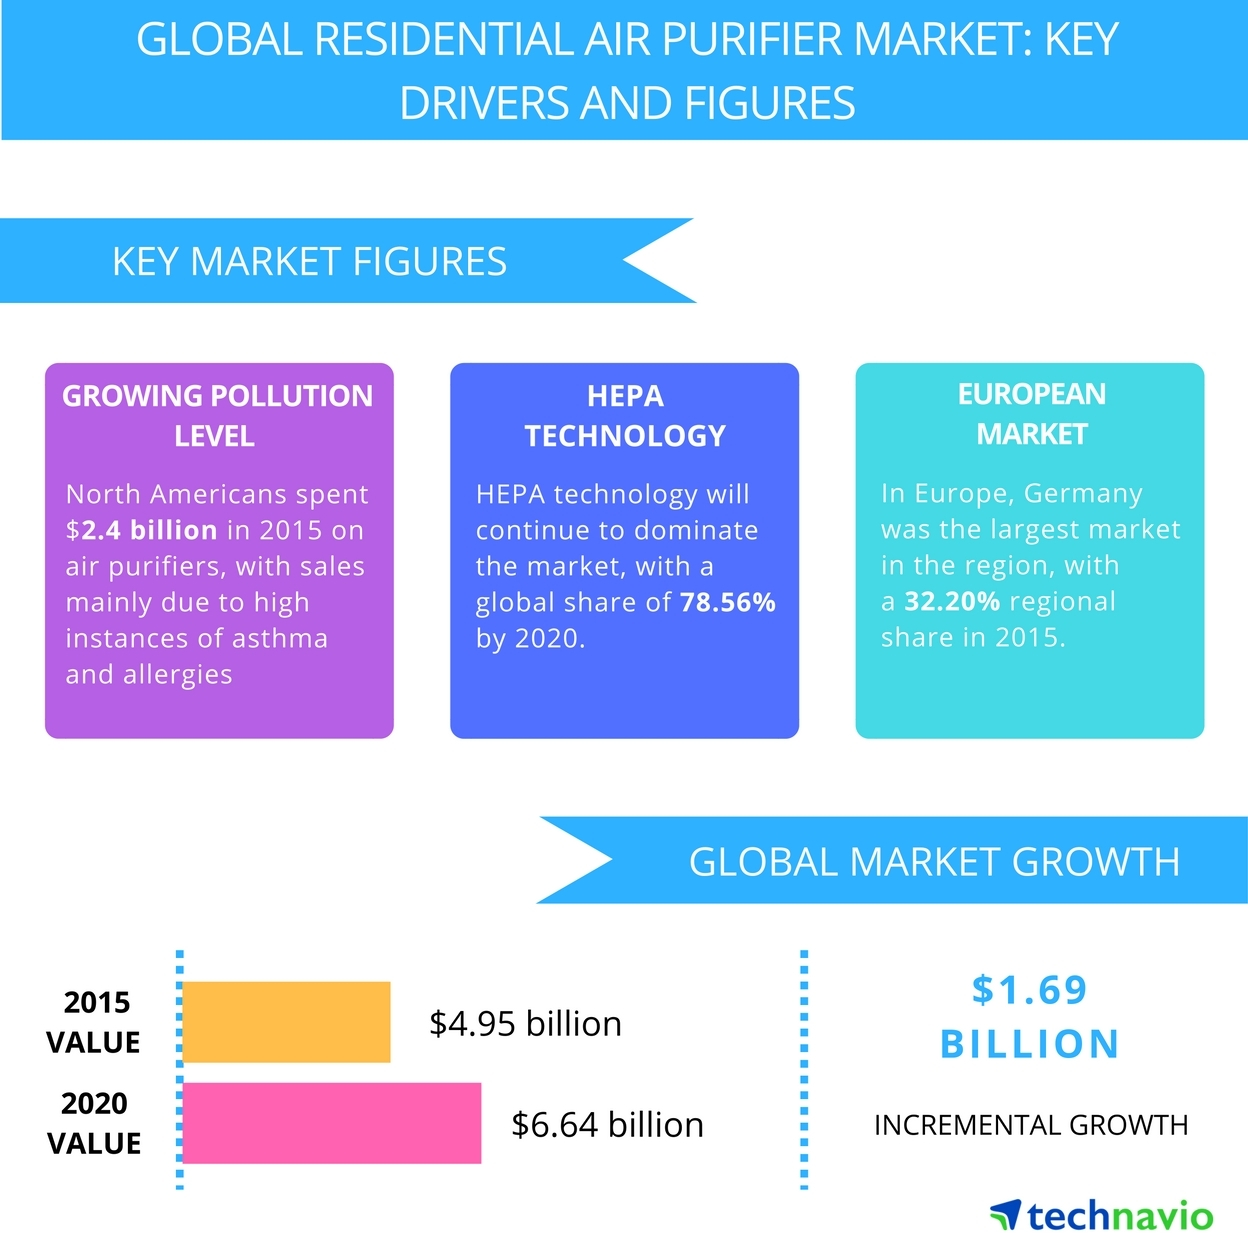 Best Air Purifier For Allergies 2020 Top 5 Vendors in the Global Residential Air Purifier Market from